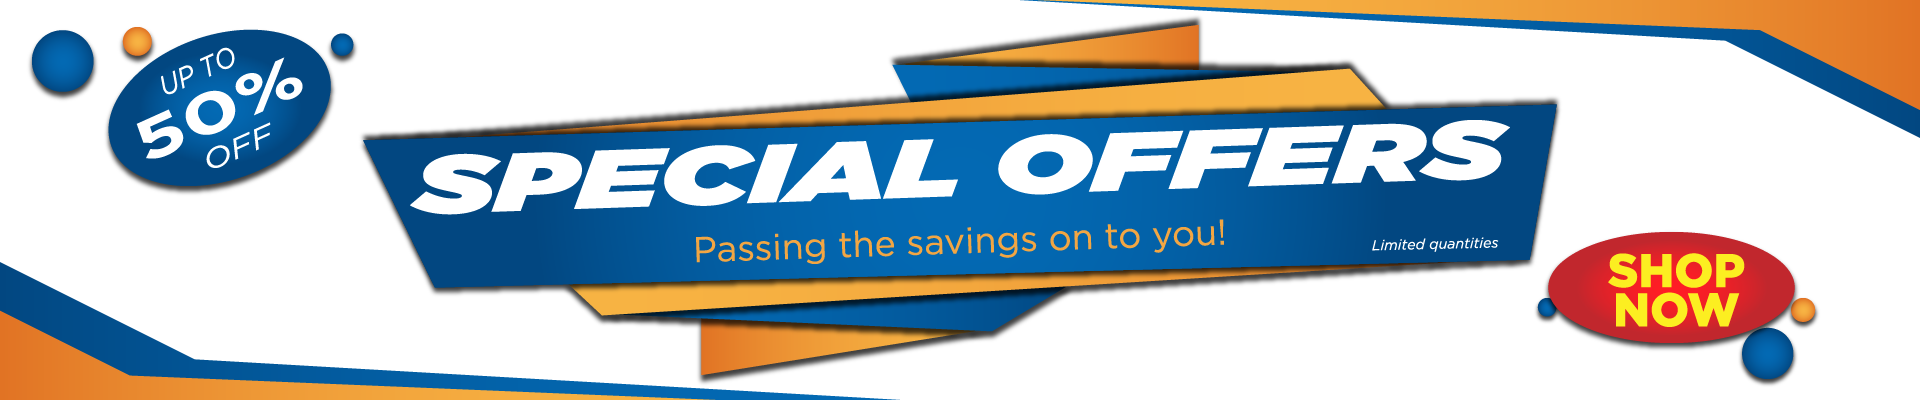 Special Offers - Passing the savings on to you!